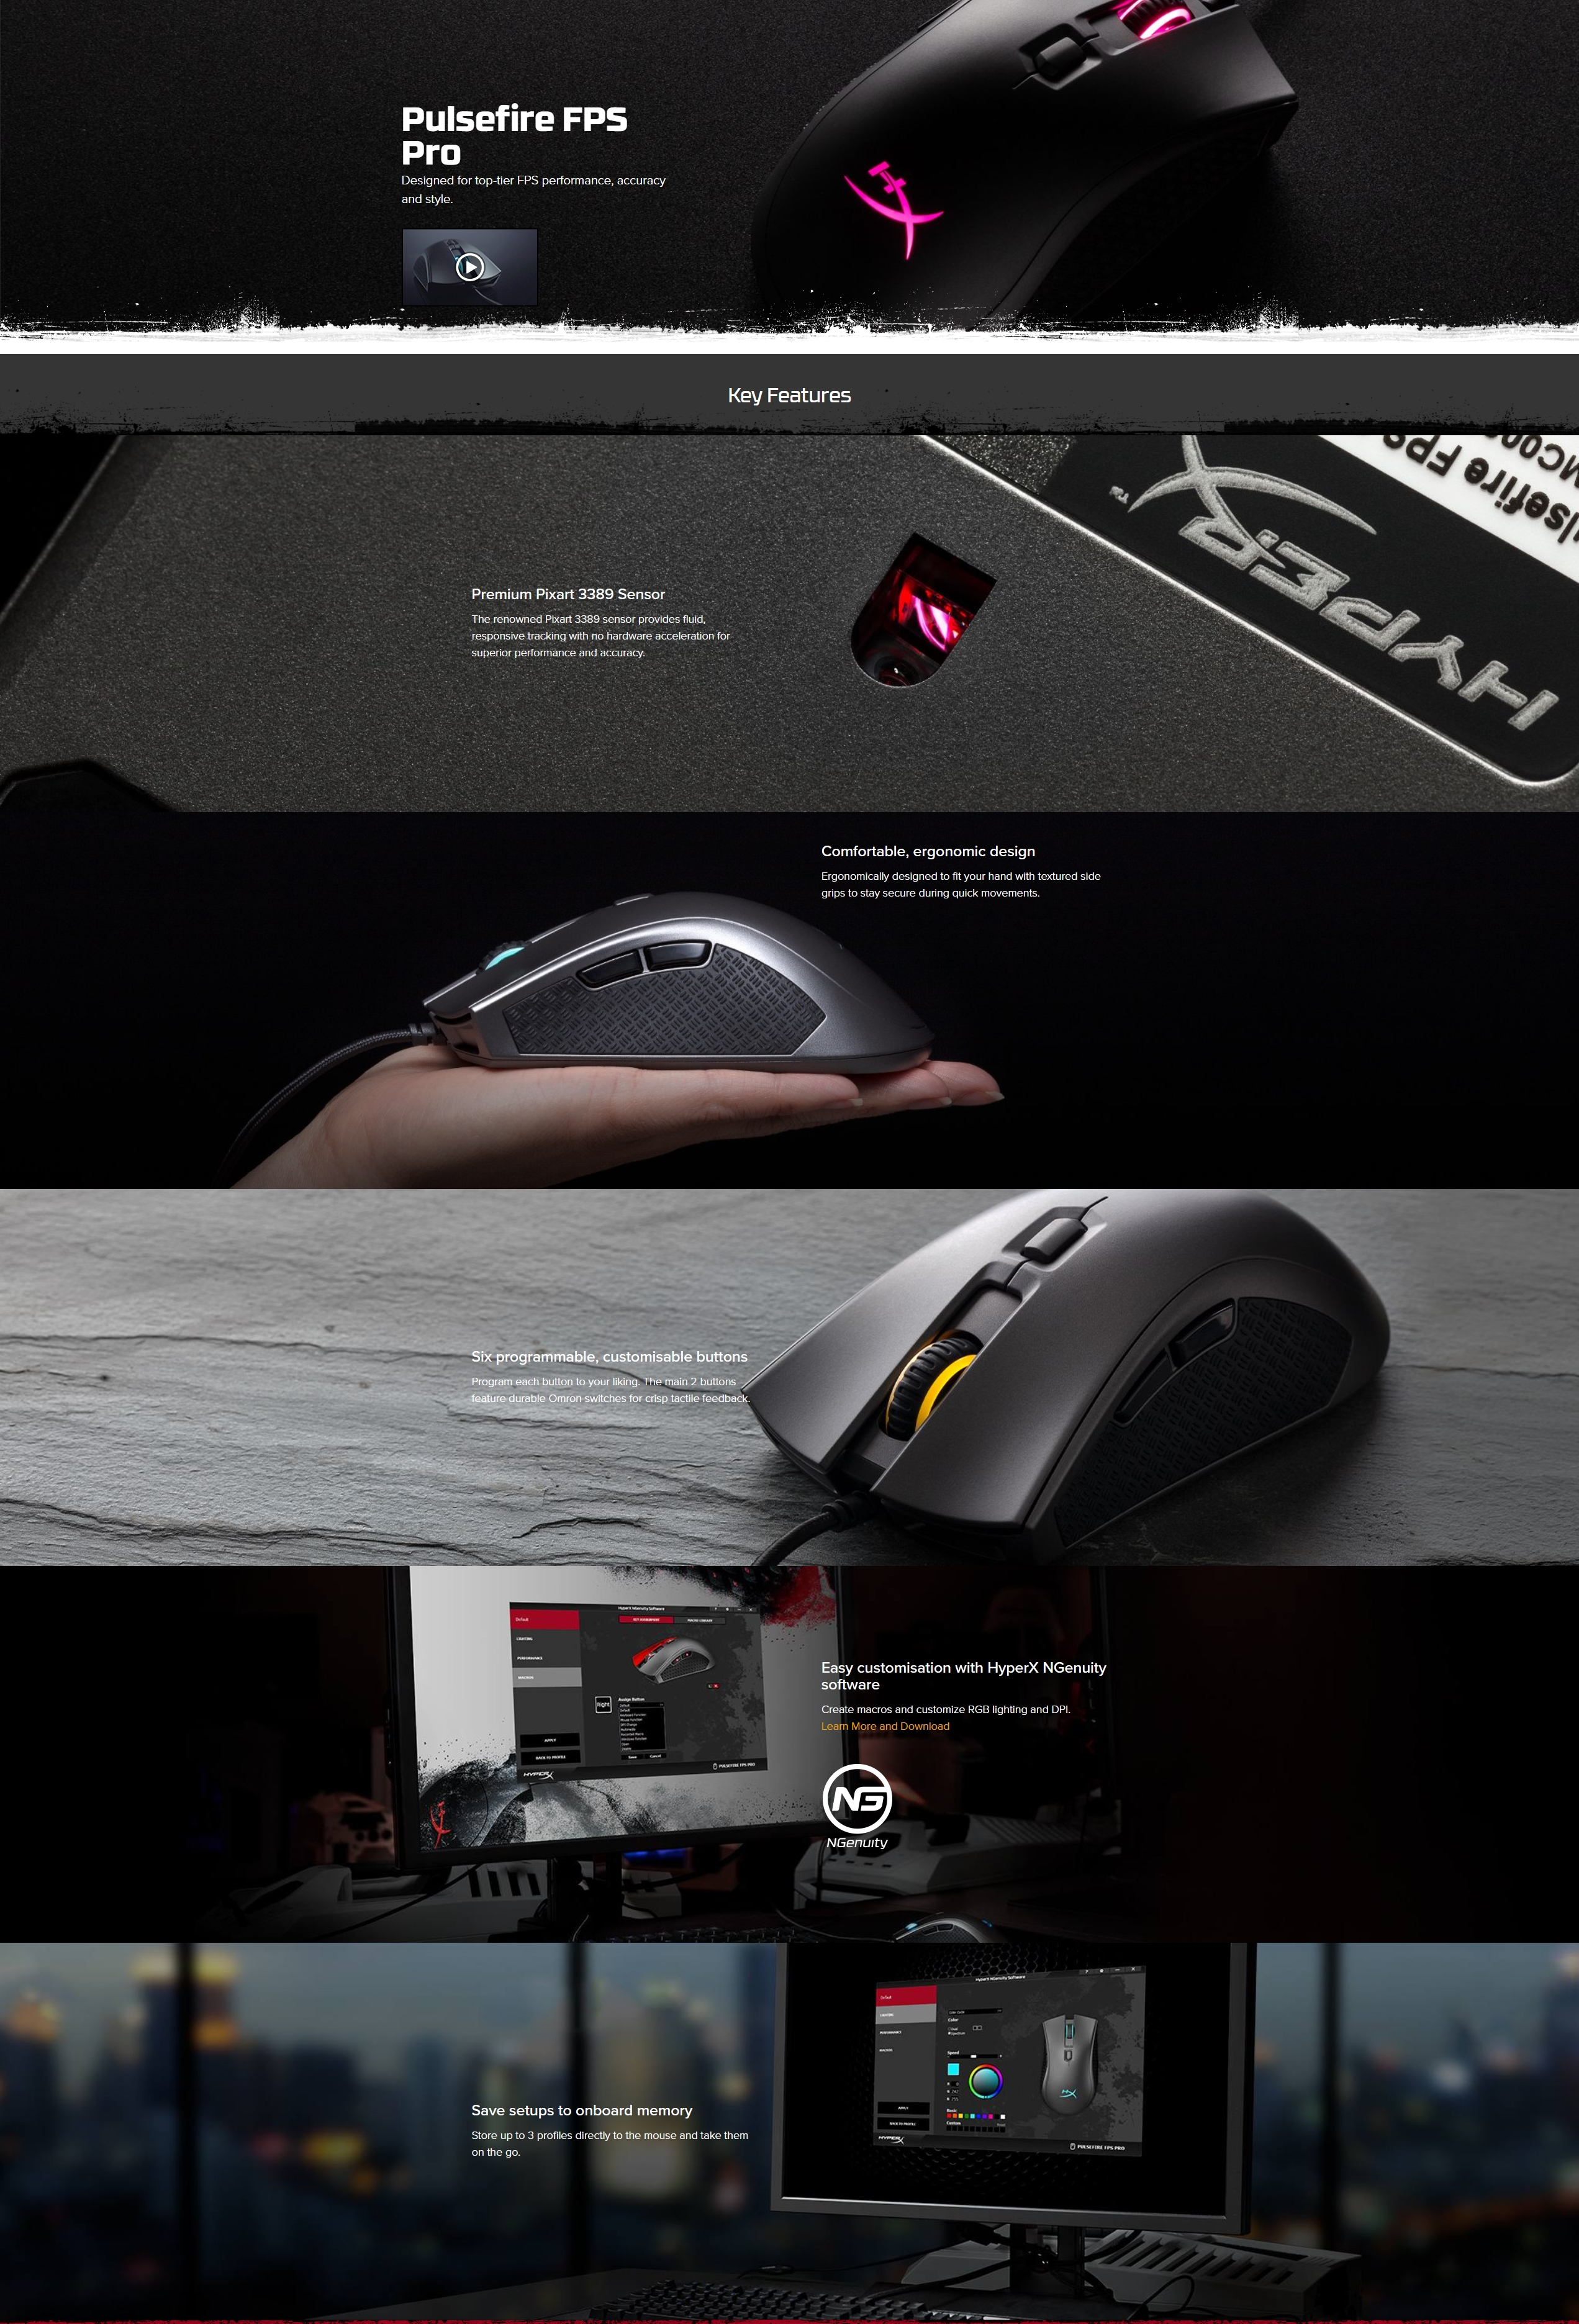 A large marketing image providing additional information about the product Kingston HyperX Pulsefire FPS Pro RGB Gaming Mouse - Additional alt info not provided